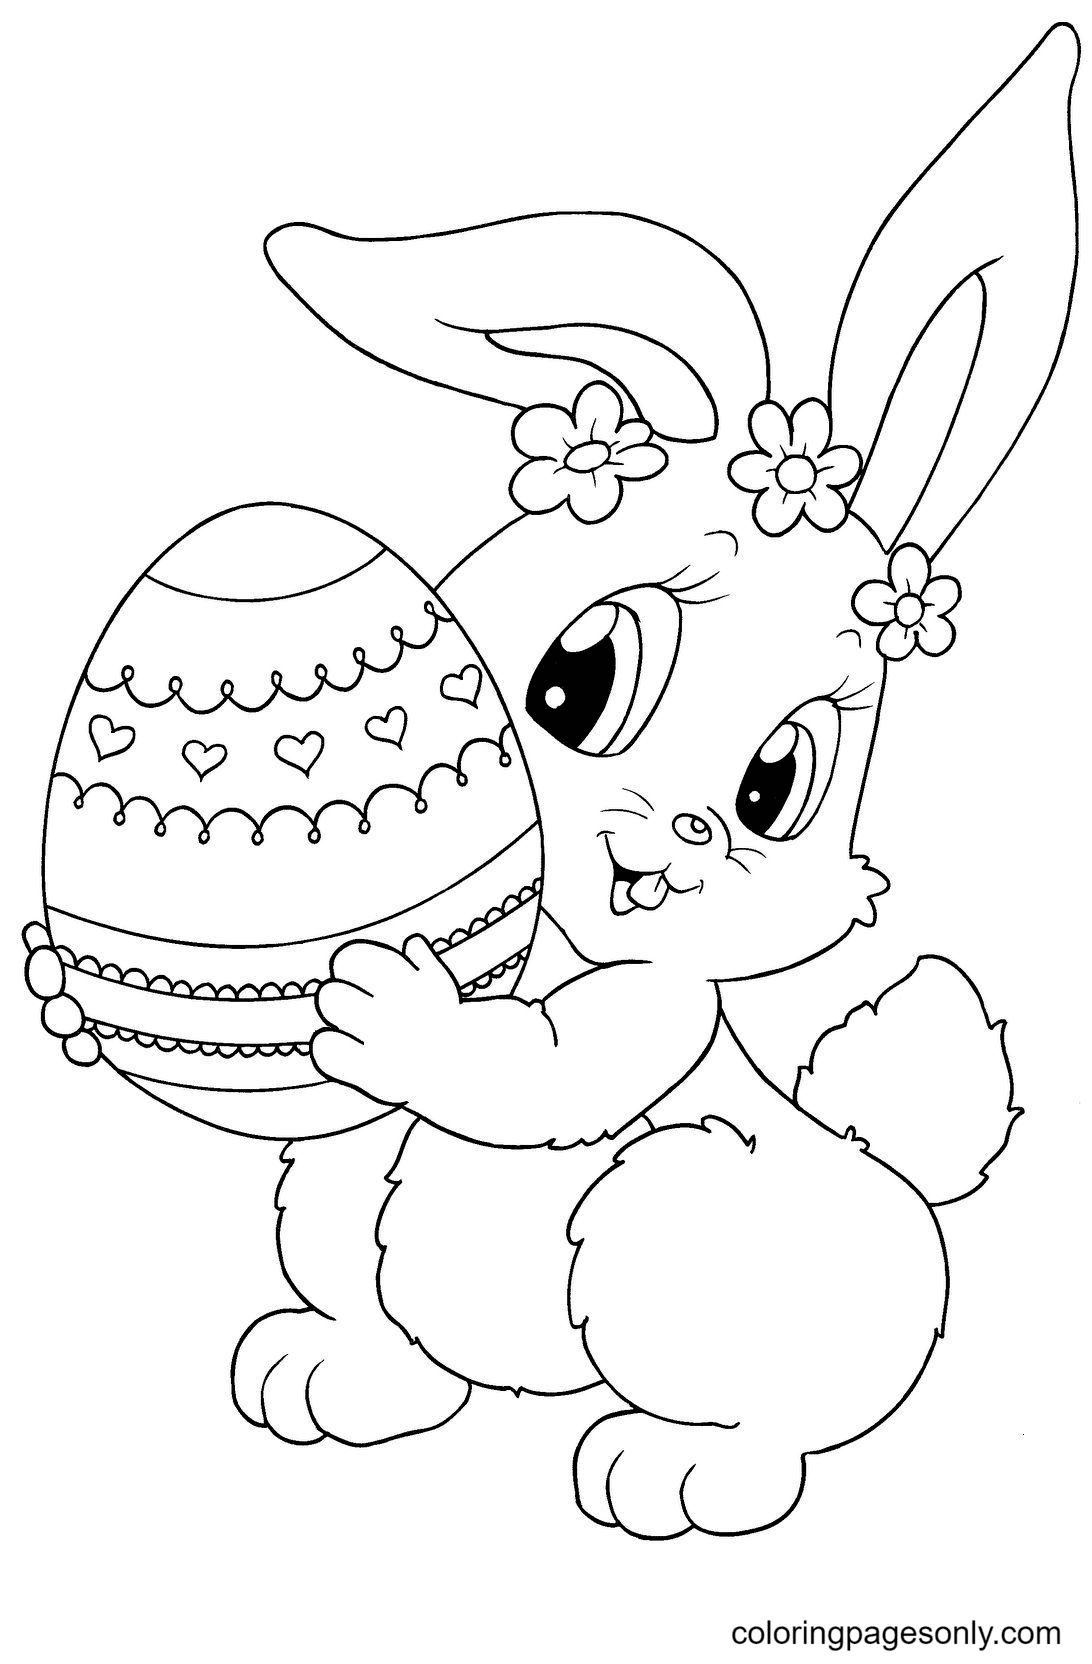 Bunny Girl Holding an Easter Egg Coloring Page